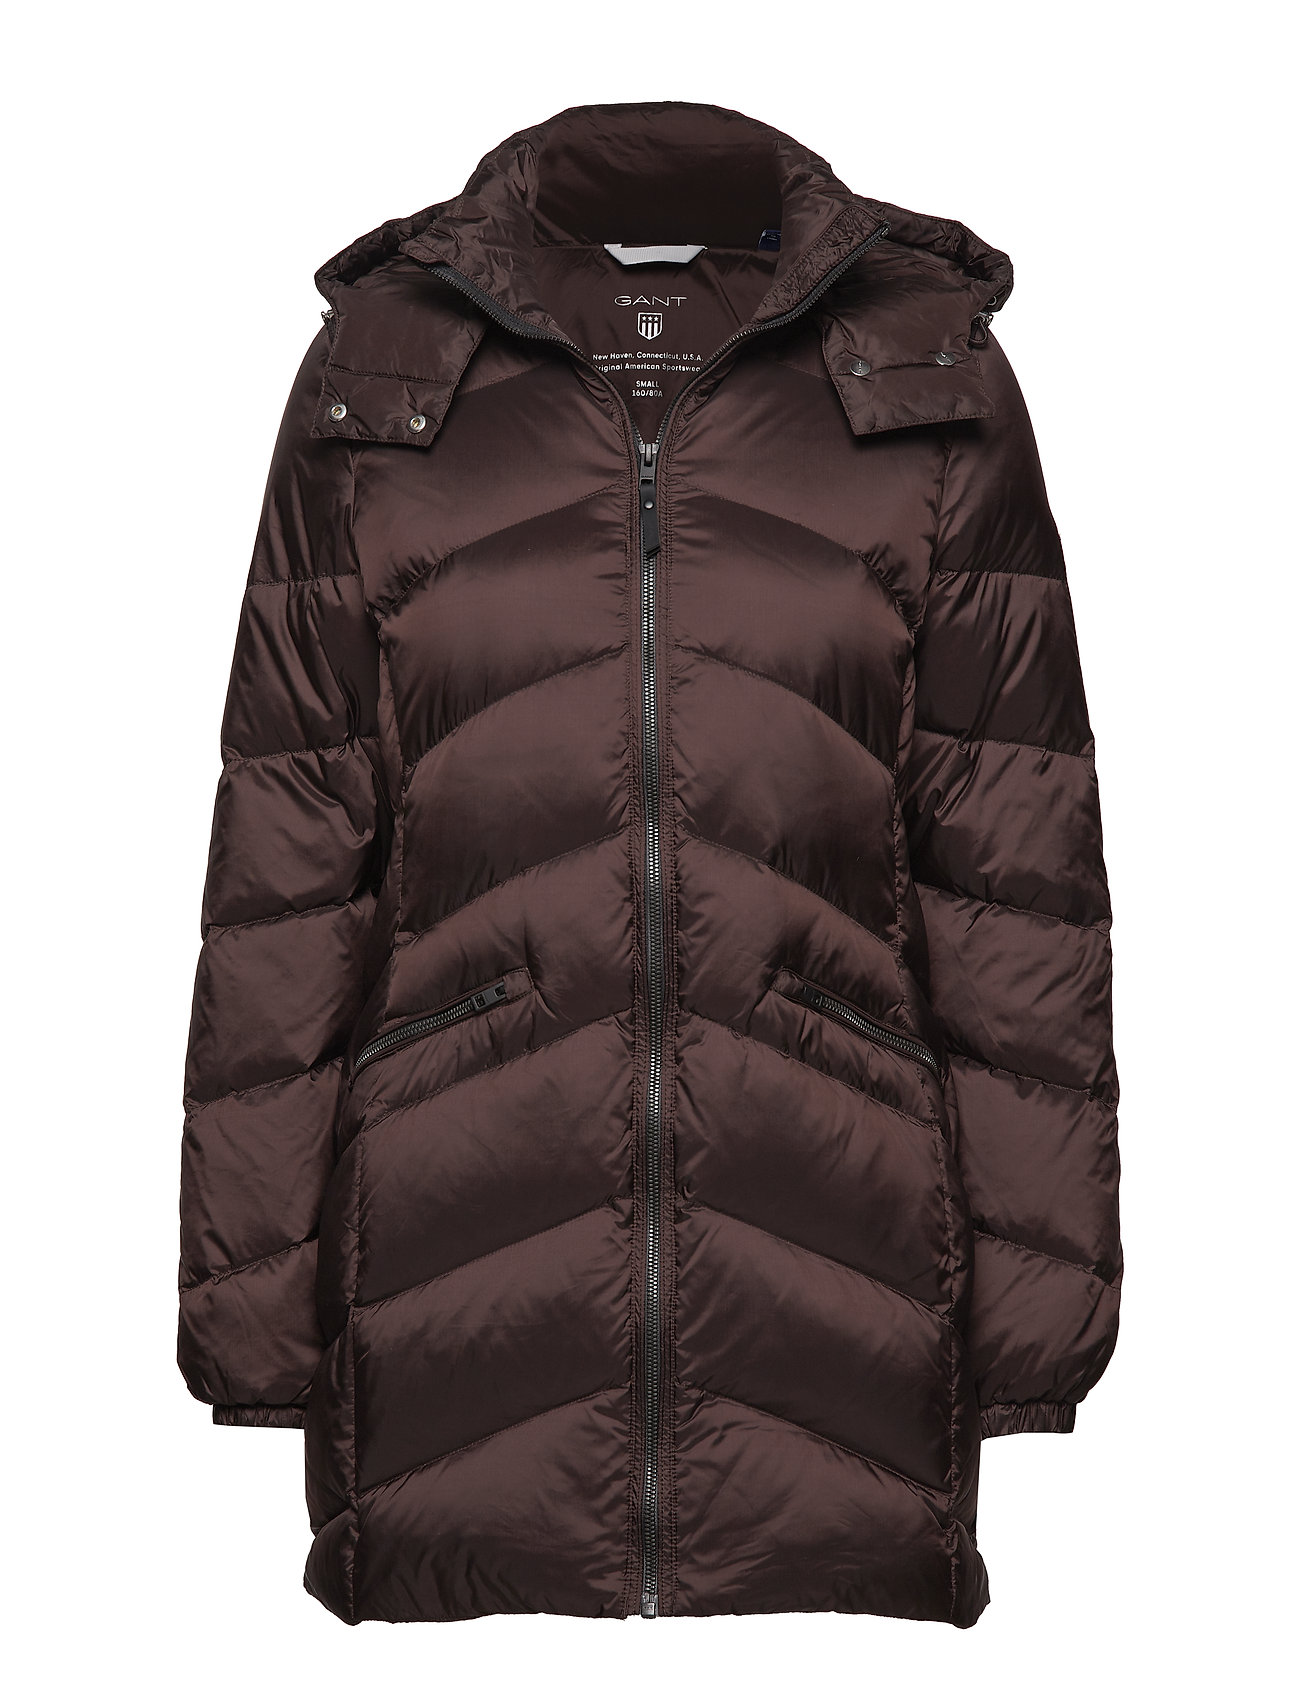 GANT O2. CLASSIC LONG DOWN JACKET - BLACK COFFEE